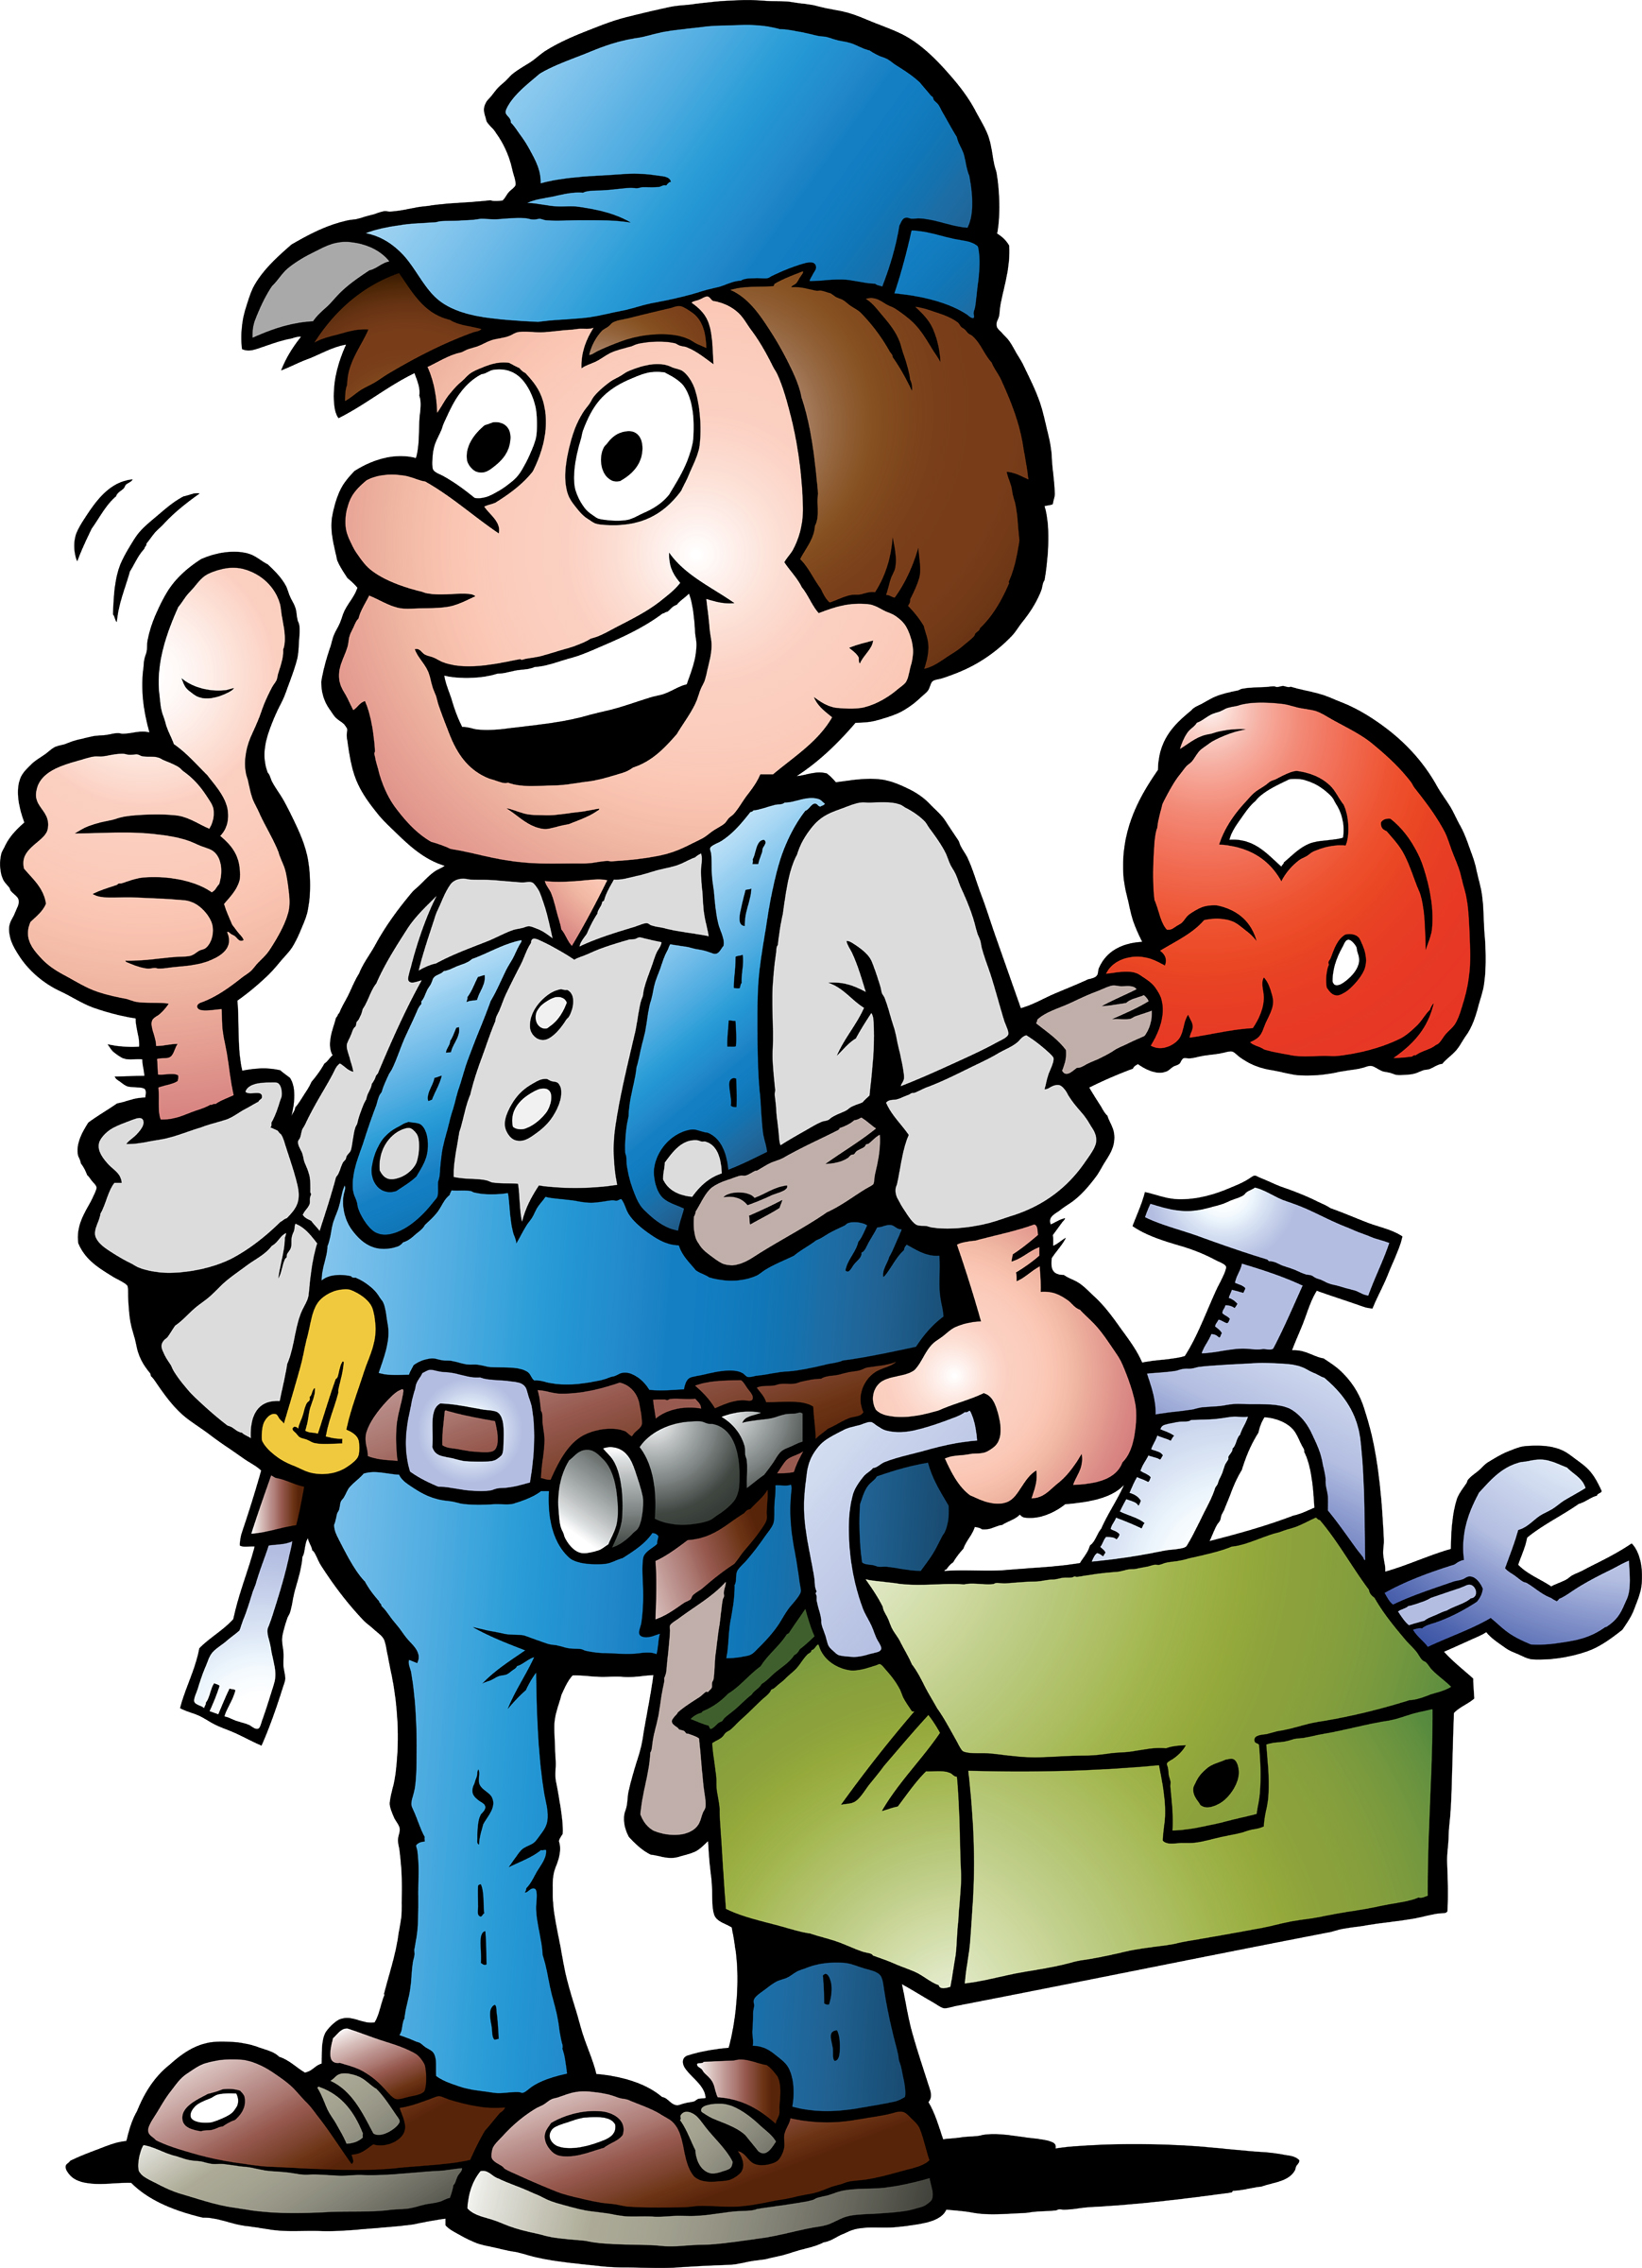 Handyman Clipart. Gordy The Handyman | H-handyman clipart. Gordy The Handyman | Handyman Myrtle Beach - Part 7-6